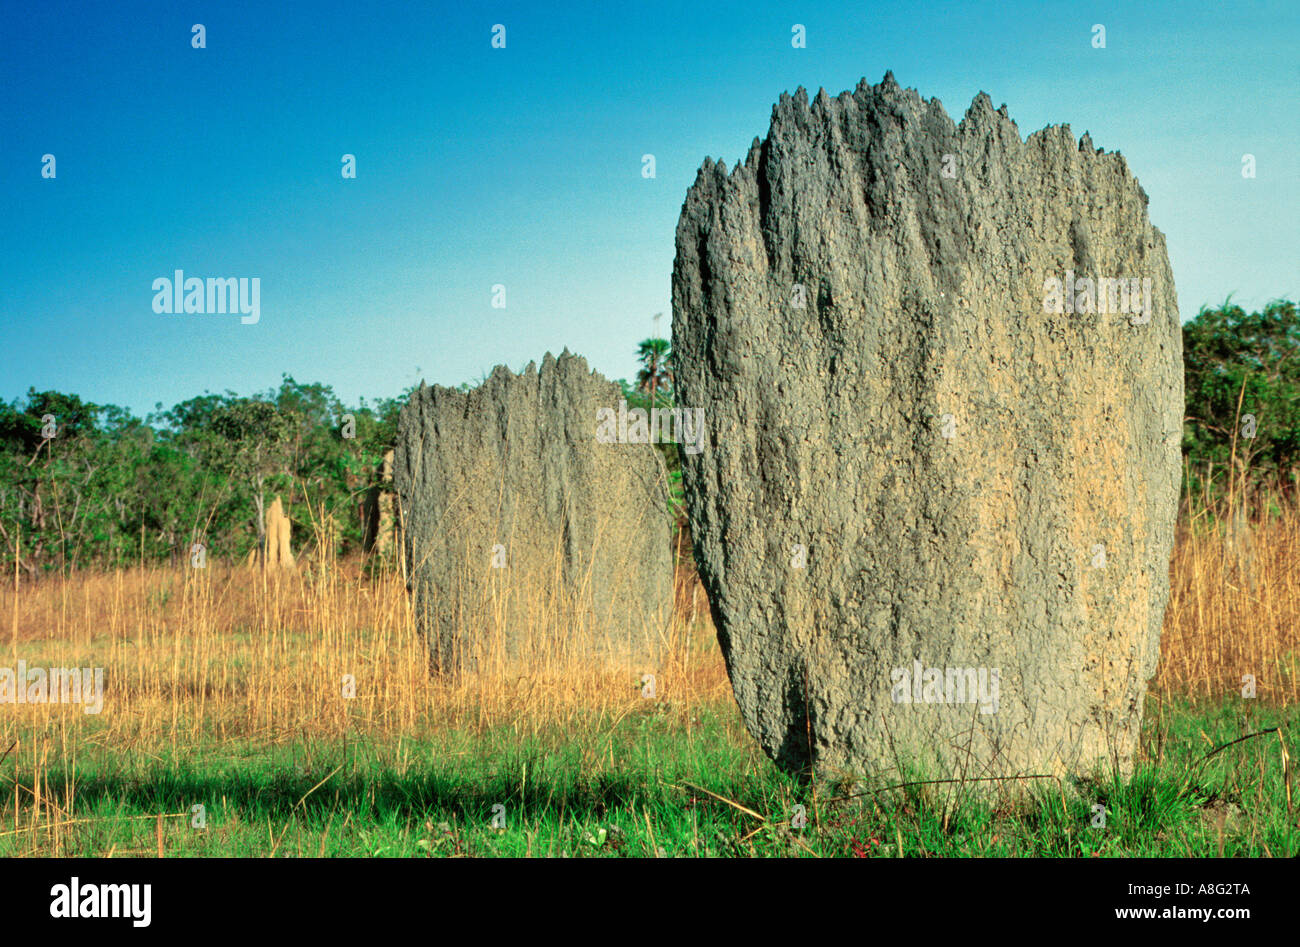 Magnetic Termite Mounds, Litchfield Nationapark, Northern Territory, Australia - Stock Image